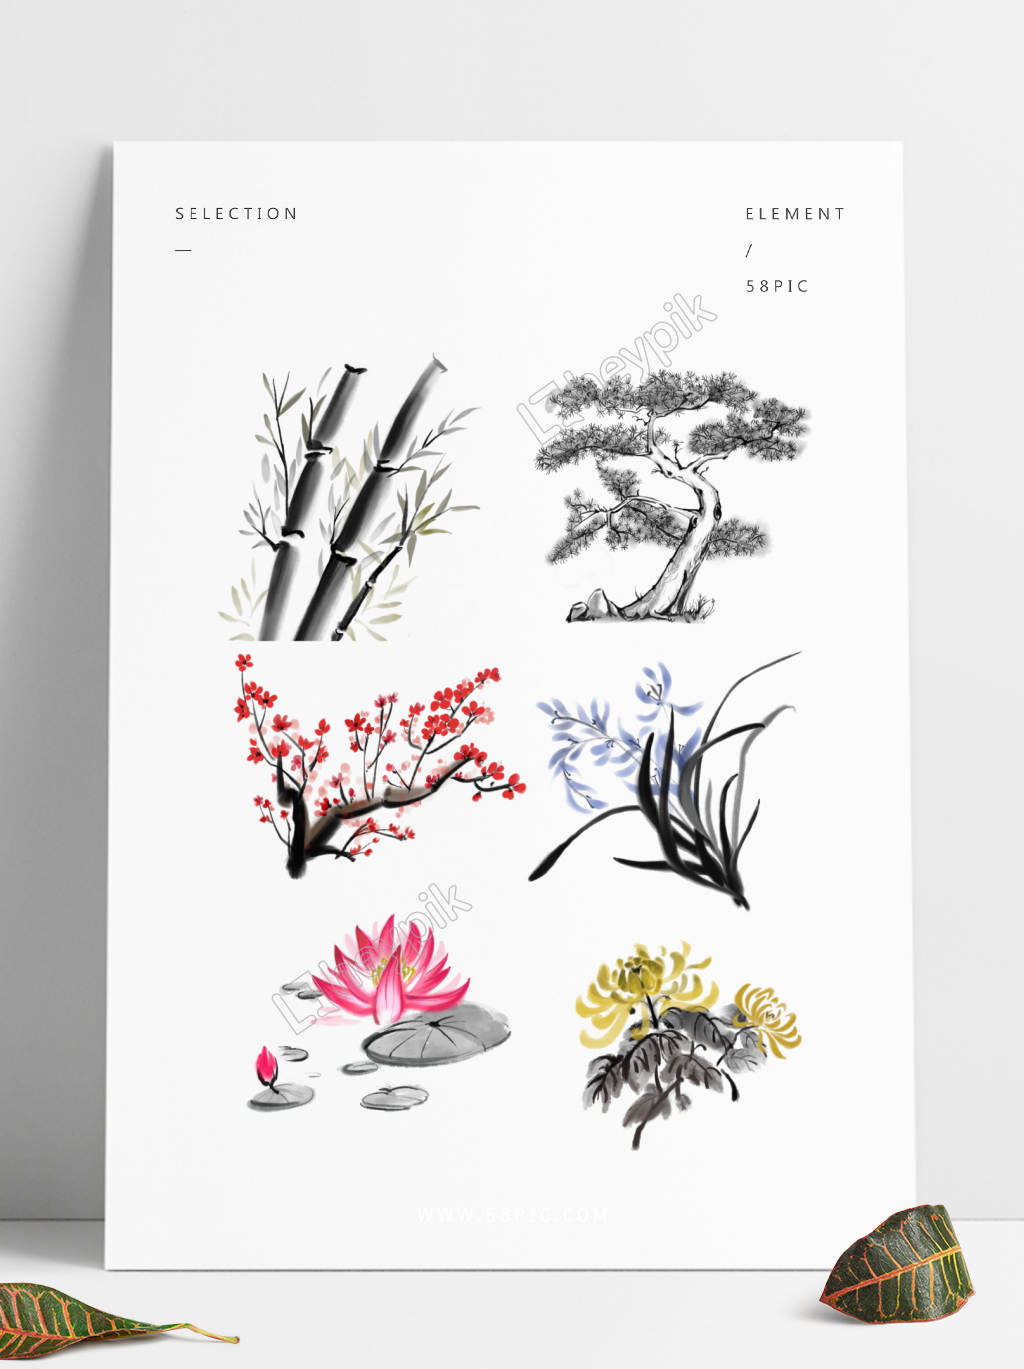 The Bamboo Tree Growth Process Png - Ink plant plum orchid bamboo plum blossom pine tree water lily set ...